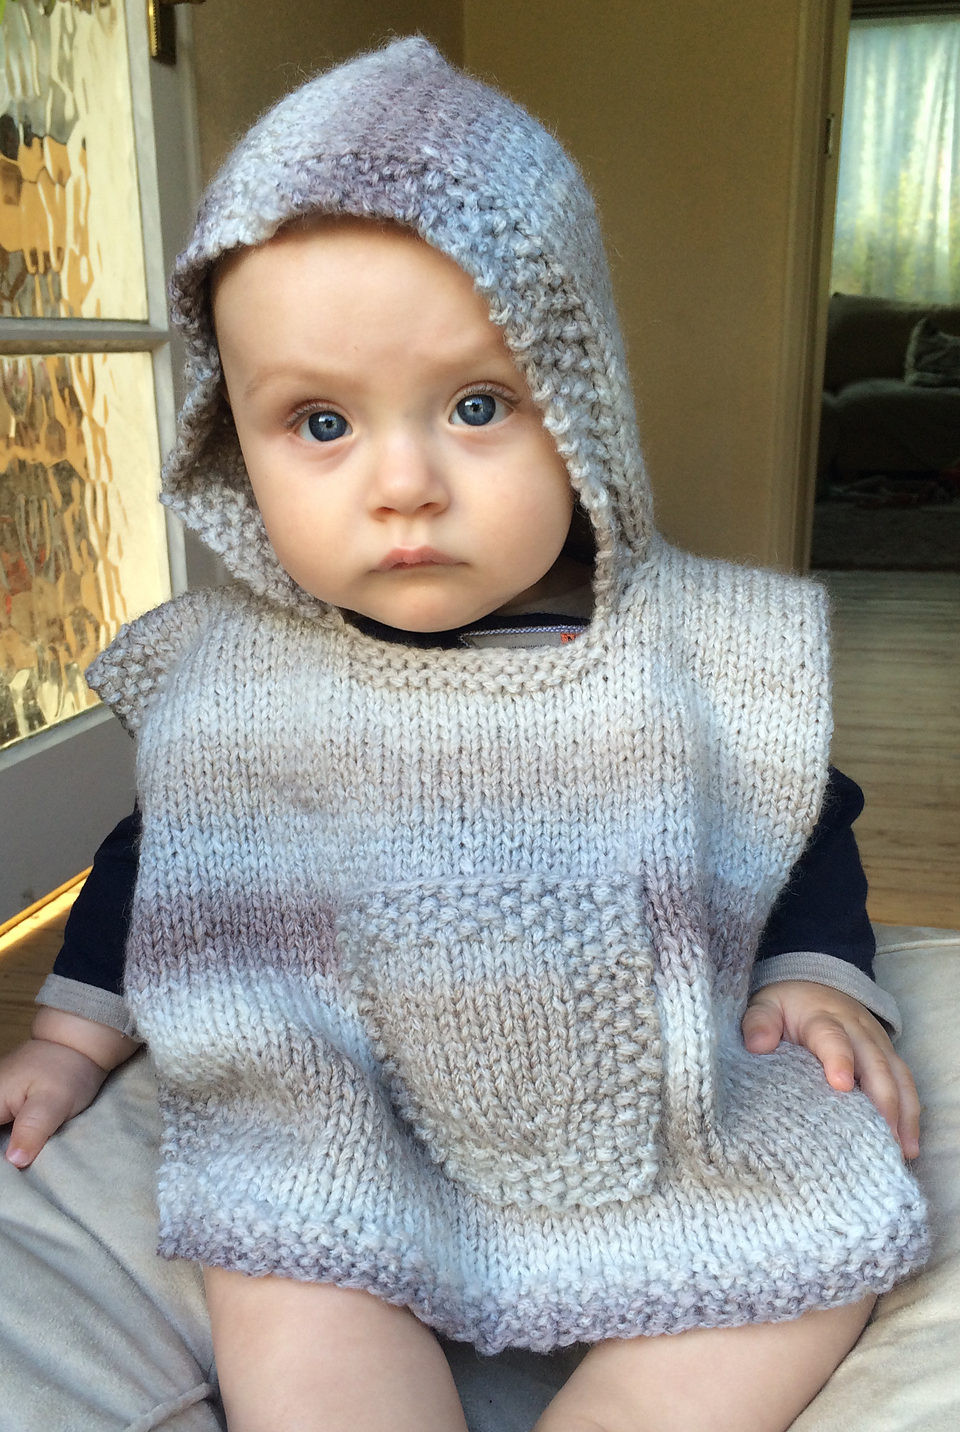 Best Of Ponchos for Babies and Children Knitting Patterns Free Knitting Patterns for Children Of Awesome 47 Models Free Knitting Patterns for Children